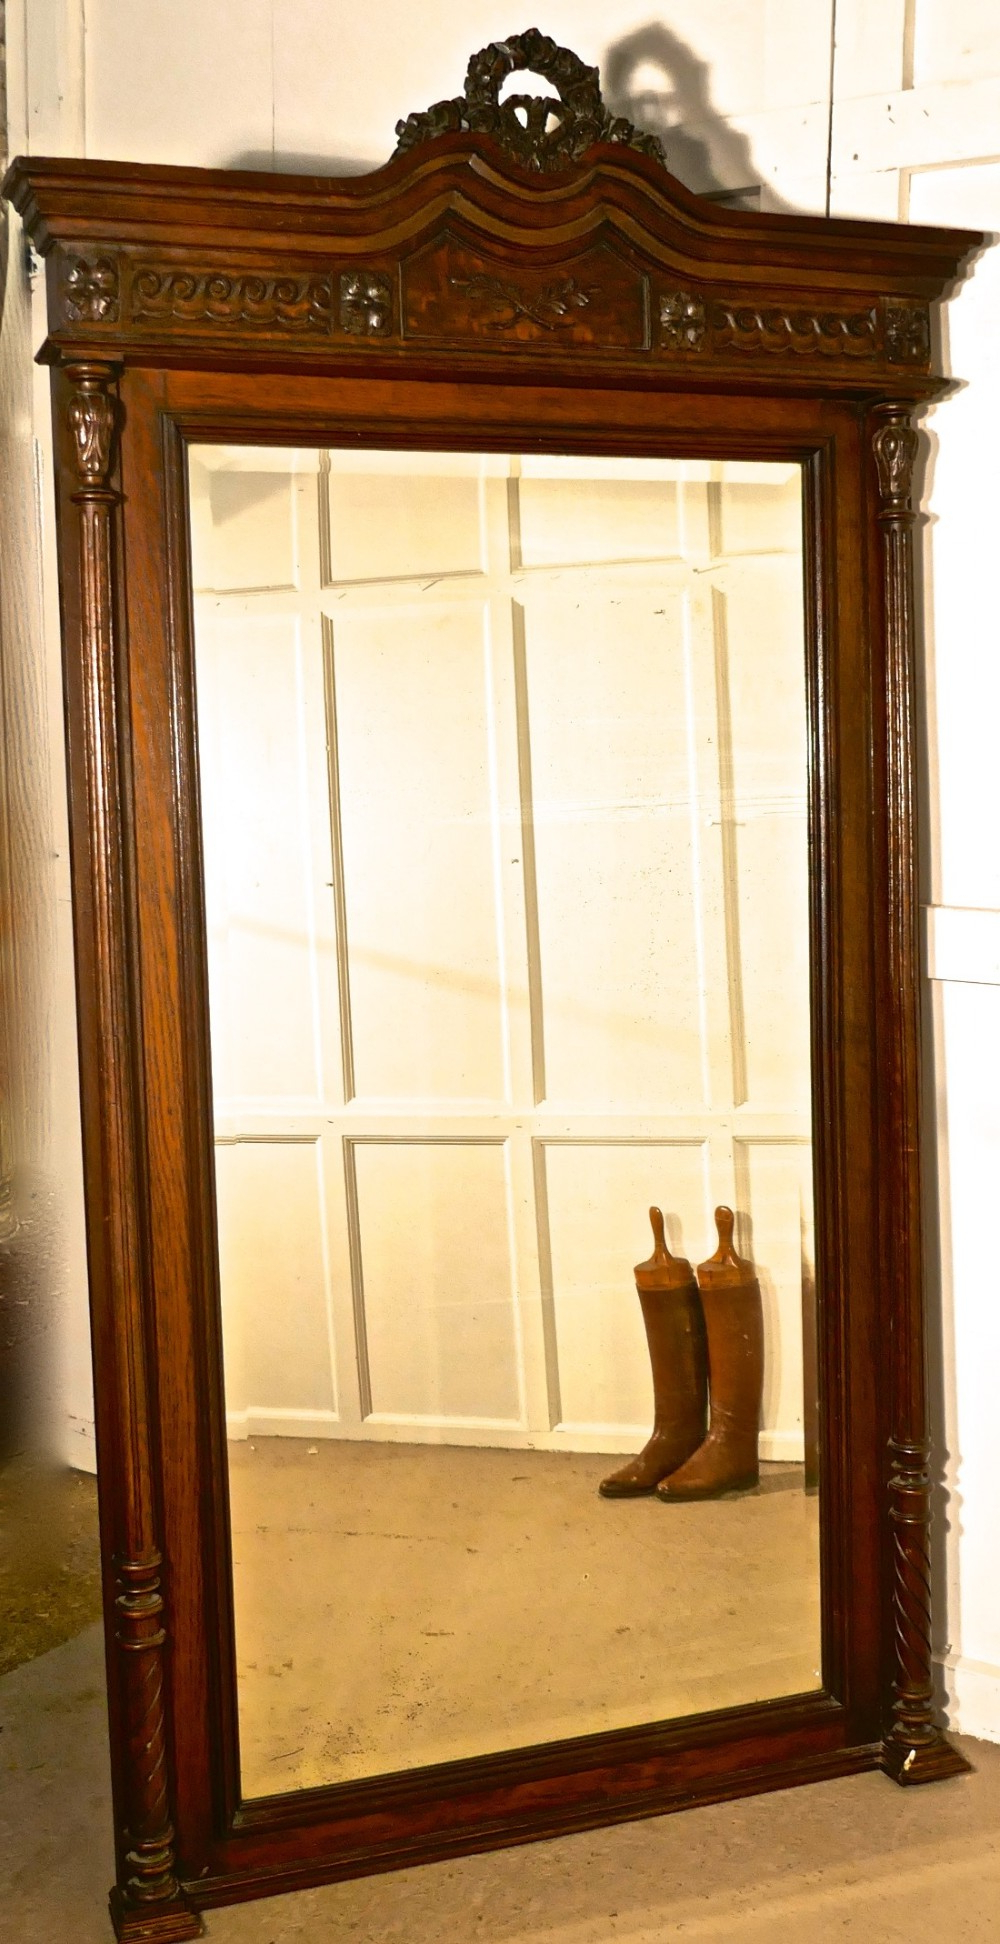 A Very Large French Carved Oak Wall Mirror (7Ft Tall Intended For Most Up To Date Oak Wall Mirrors (View 2 of 20)